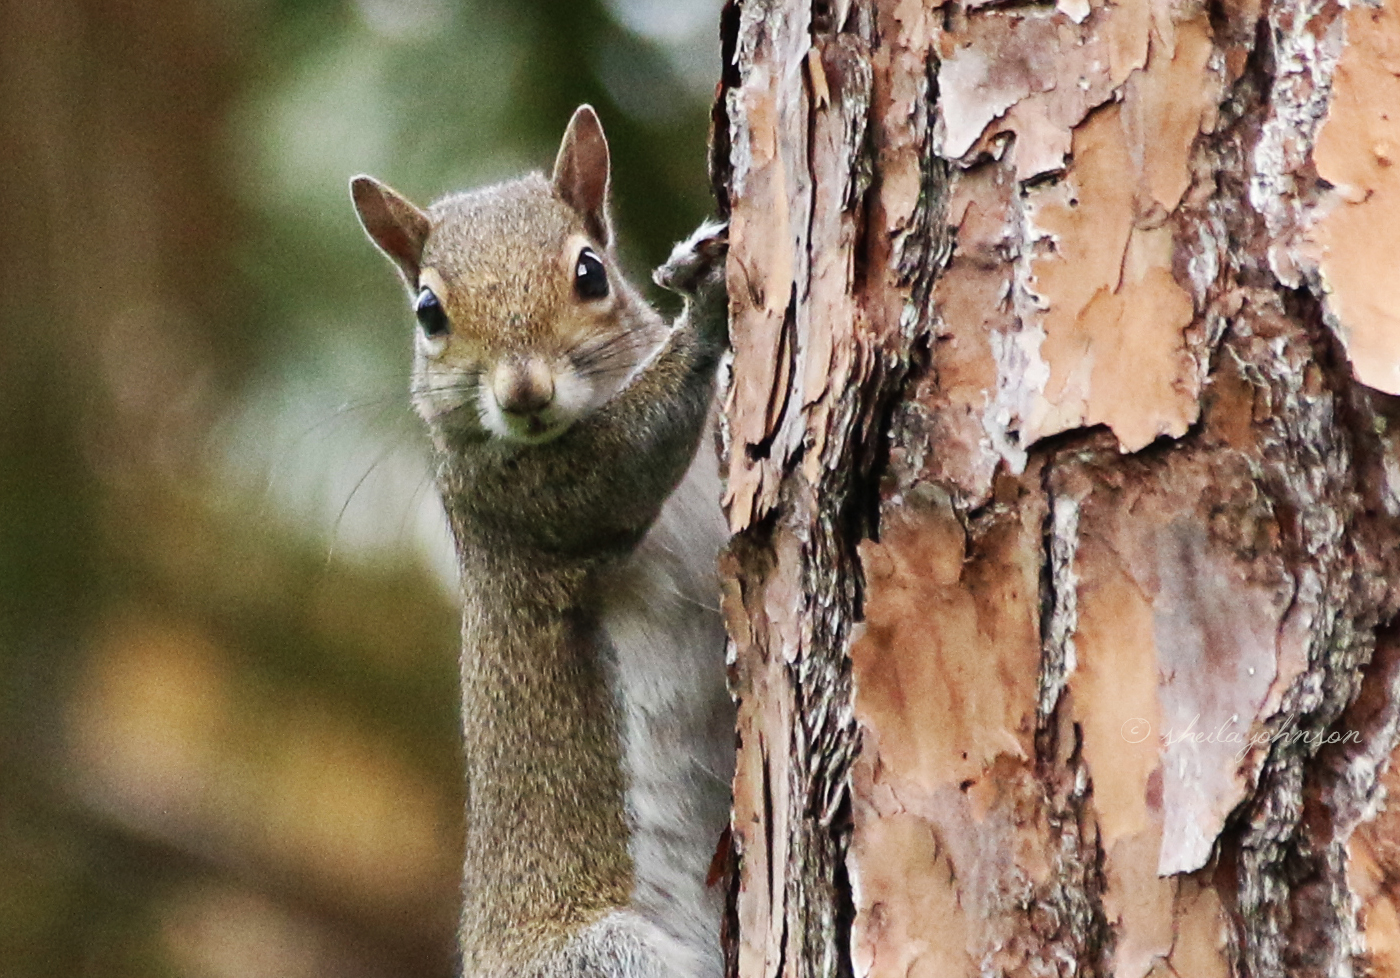 We Say 'squirrel'! They Say 'has Nuts?!' Such Cute Little Beggars, These Squirrelly Squirrels Are!